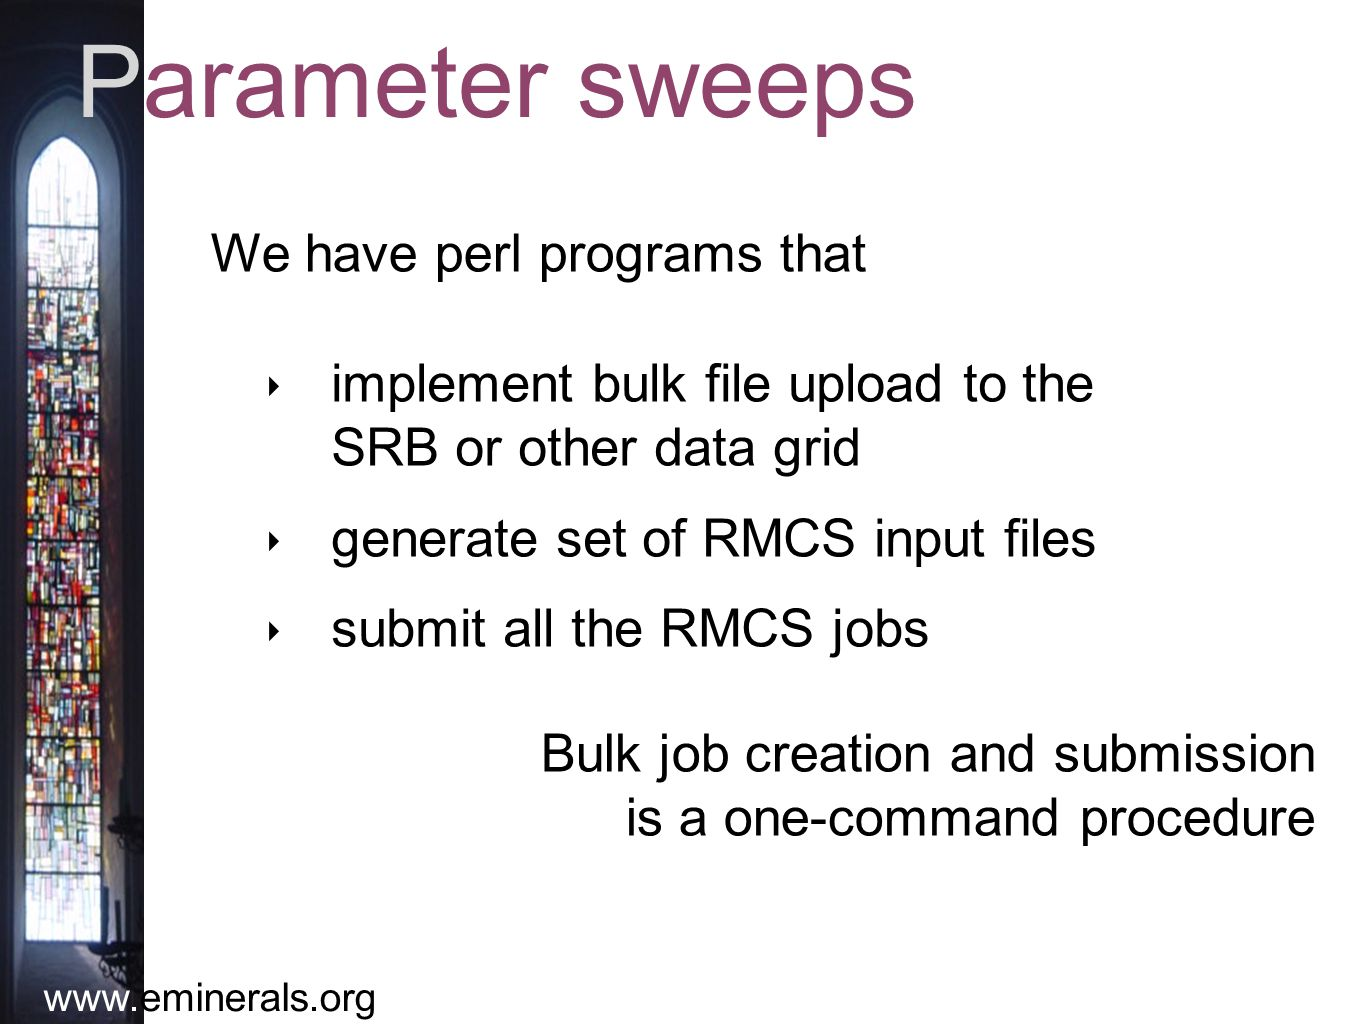 www.eminerals.org Parameter sweeps ‣ implement bulk file upload to the SRB or other data grid ‣ generate set of RMCS input files ‣ submit all the RMCS jobs We have perl programs that Bulk job creation and submission is a one-command procedure